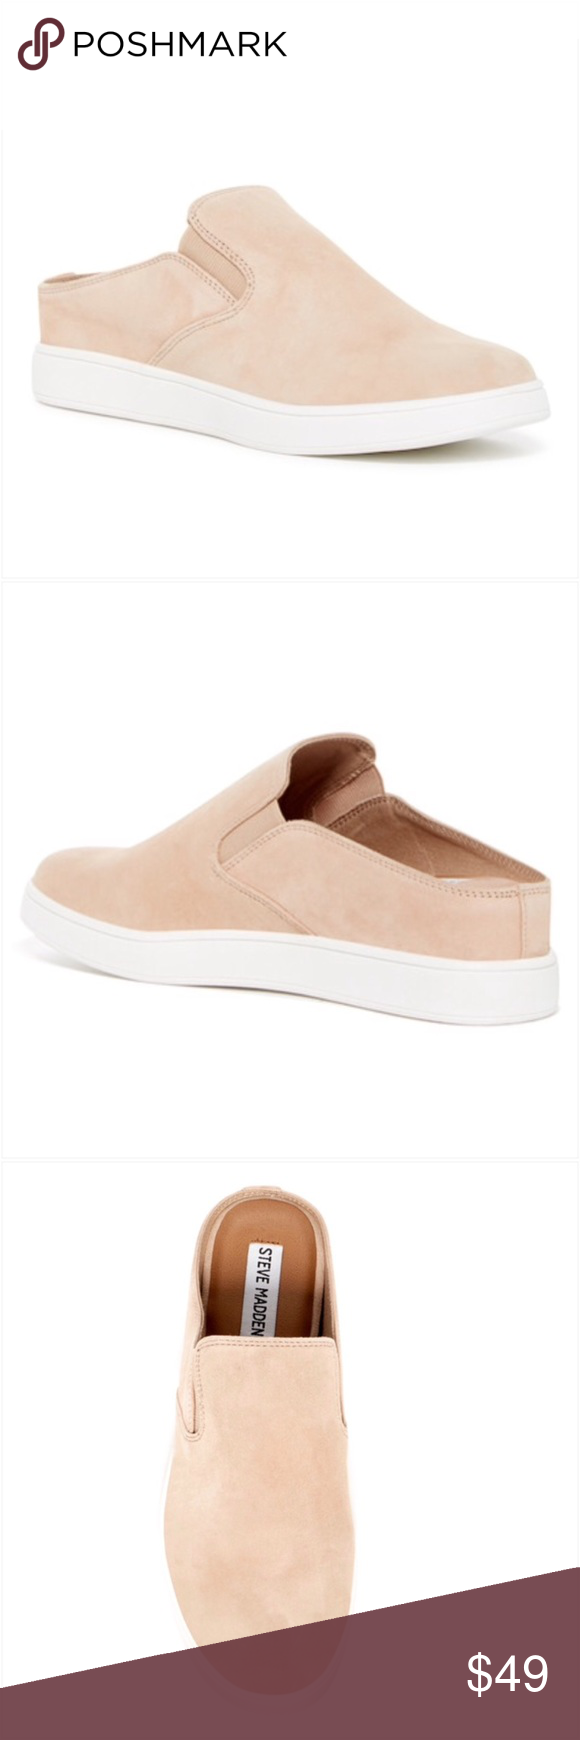 46968880dc7 Steve Madden Ezekiel Suede Cream Slip On Sneaker Sizes available are 12M  and 13M. New with box. I have these in navy and they are fabulous.